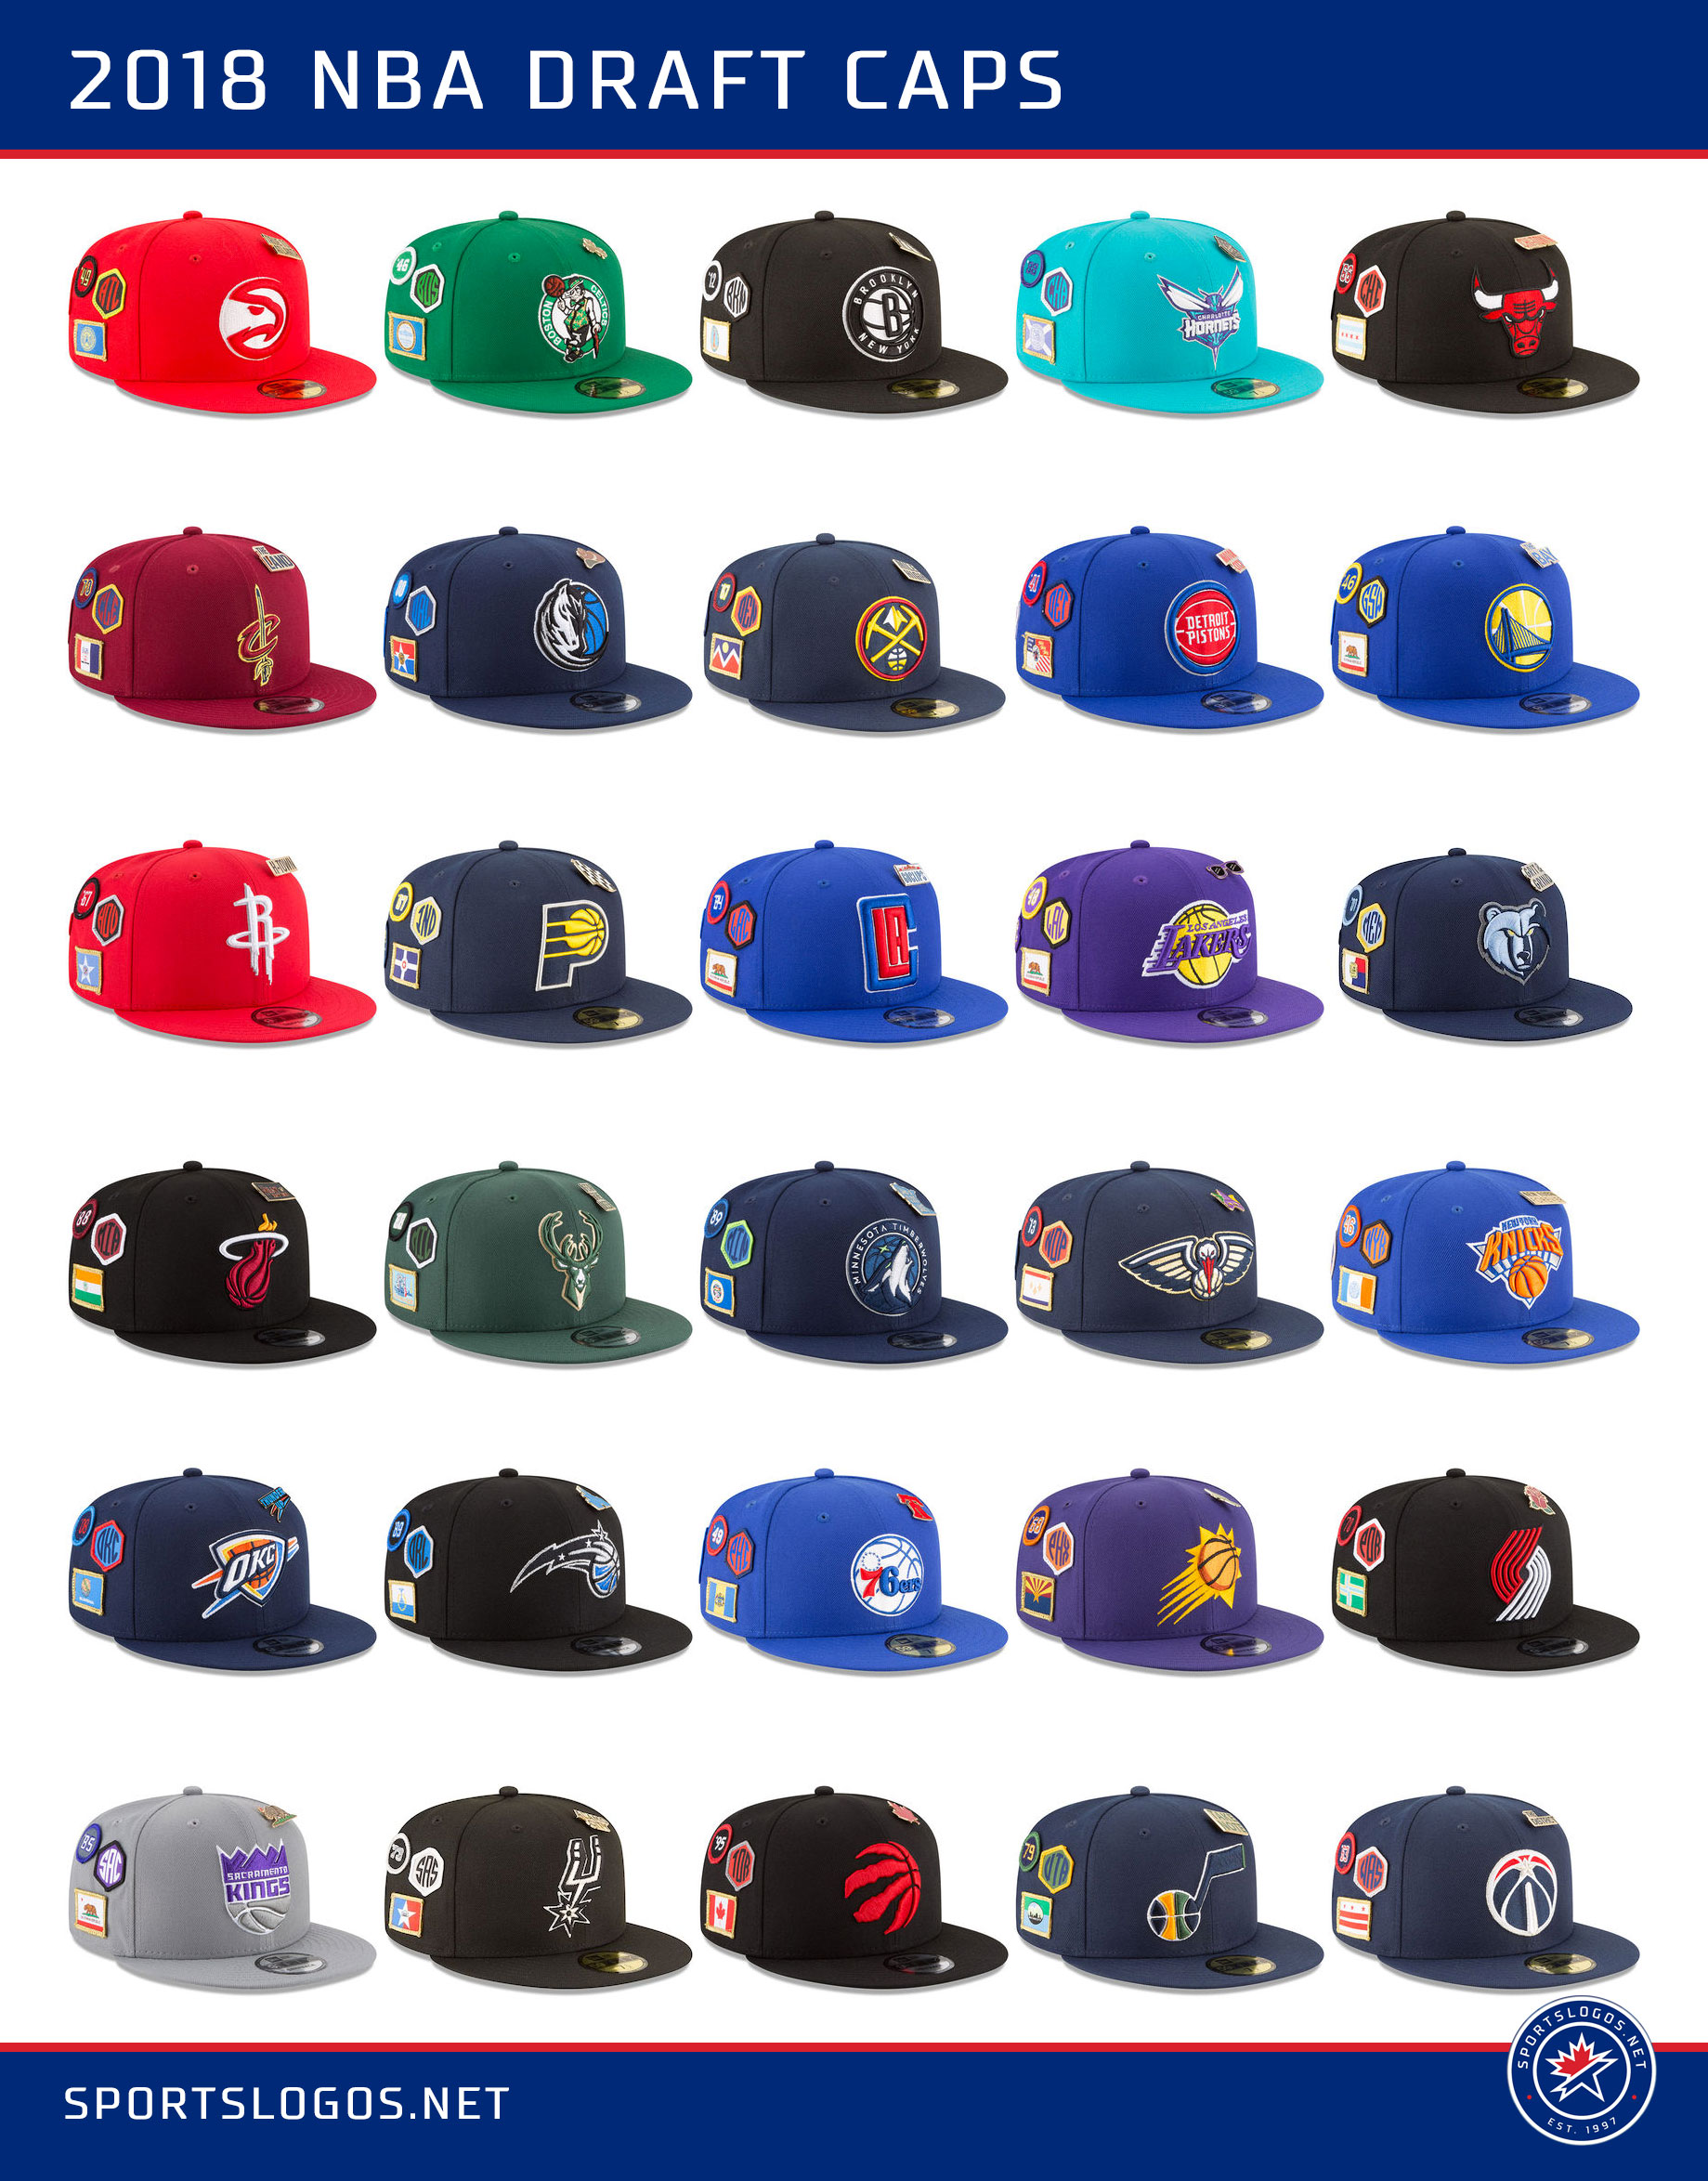 premium selection d895e d13dc ... sweden heres a look at all 30 team nba draft caps for 2018 click for a